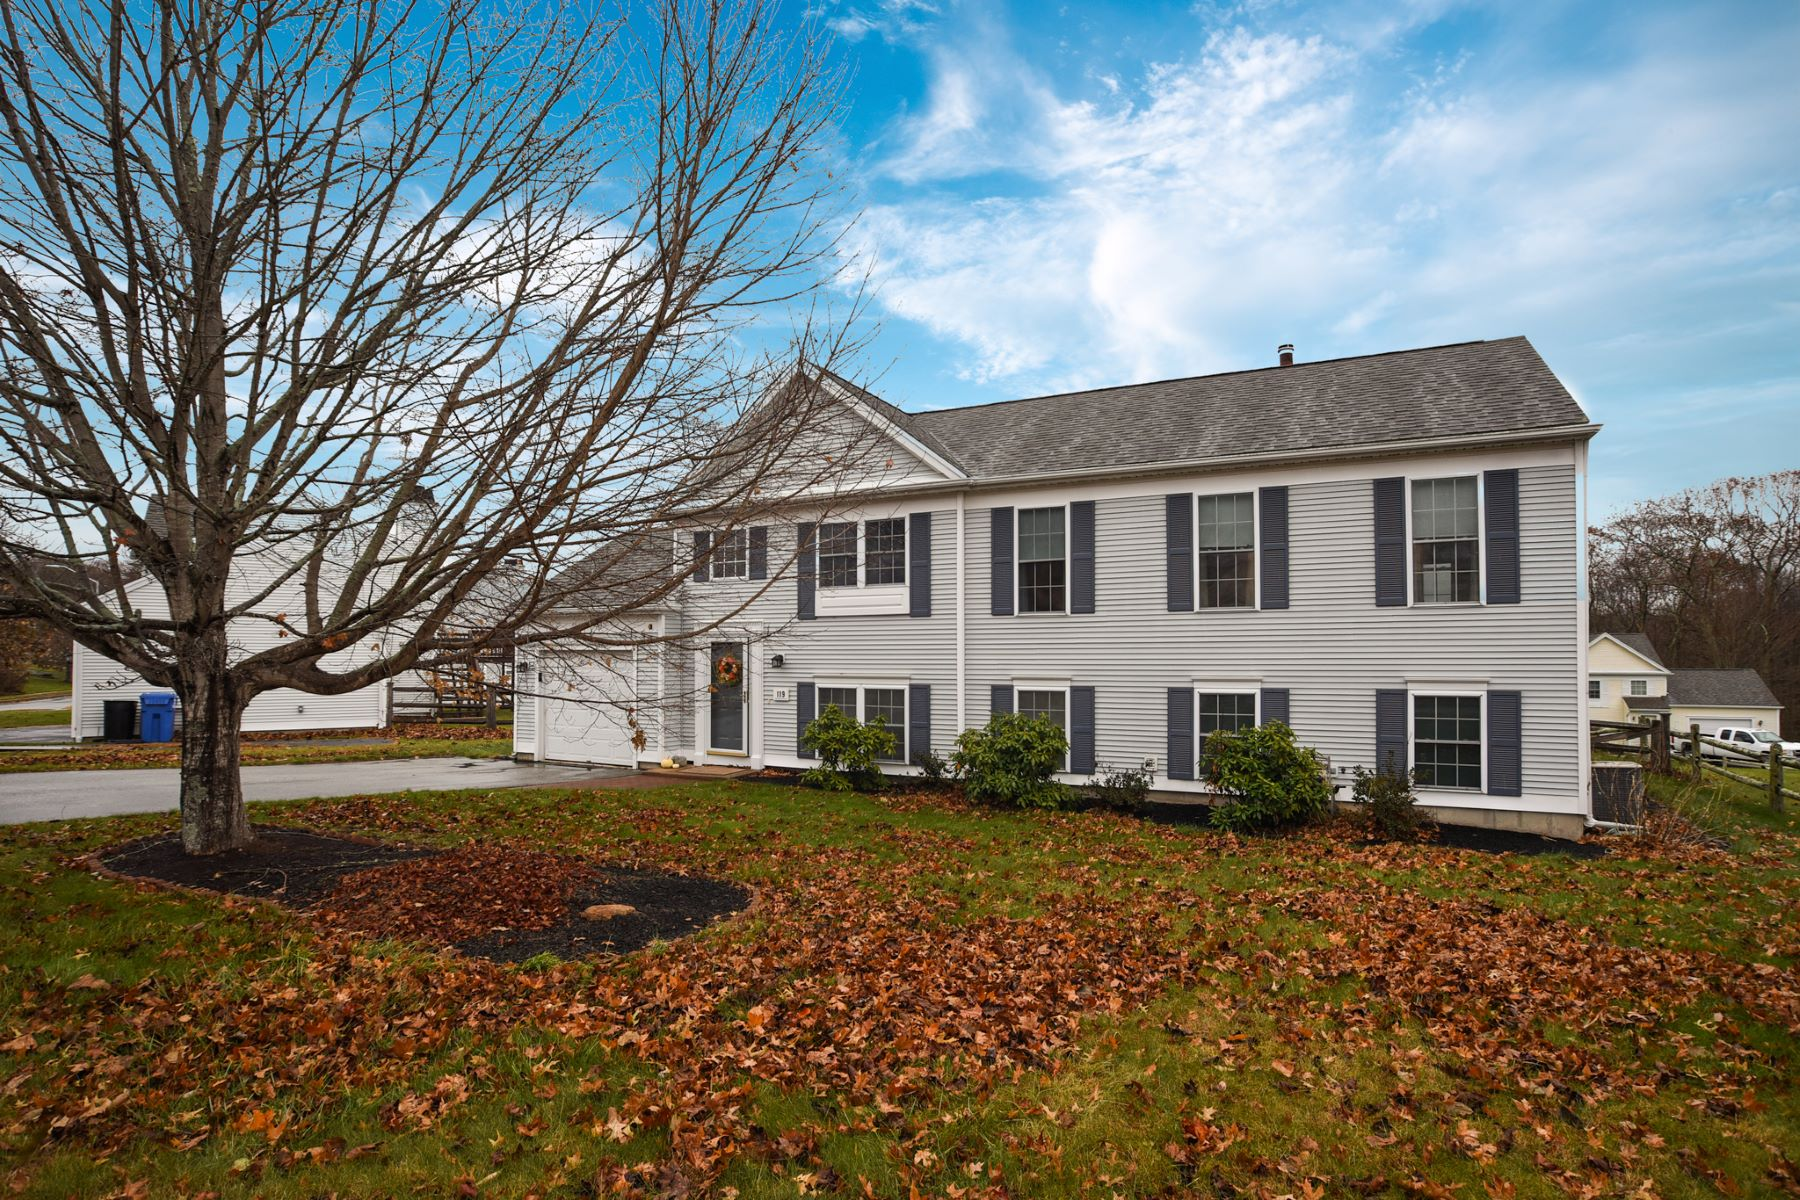 Single Family Homes for Sale at Lovely, Updated Home Close to Downtown Mystic 119 Daniel Brown Dr (Fell Thru) Groton, Connecticut 06355 United States